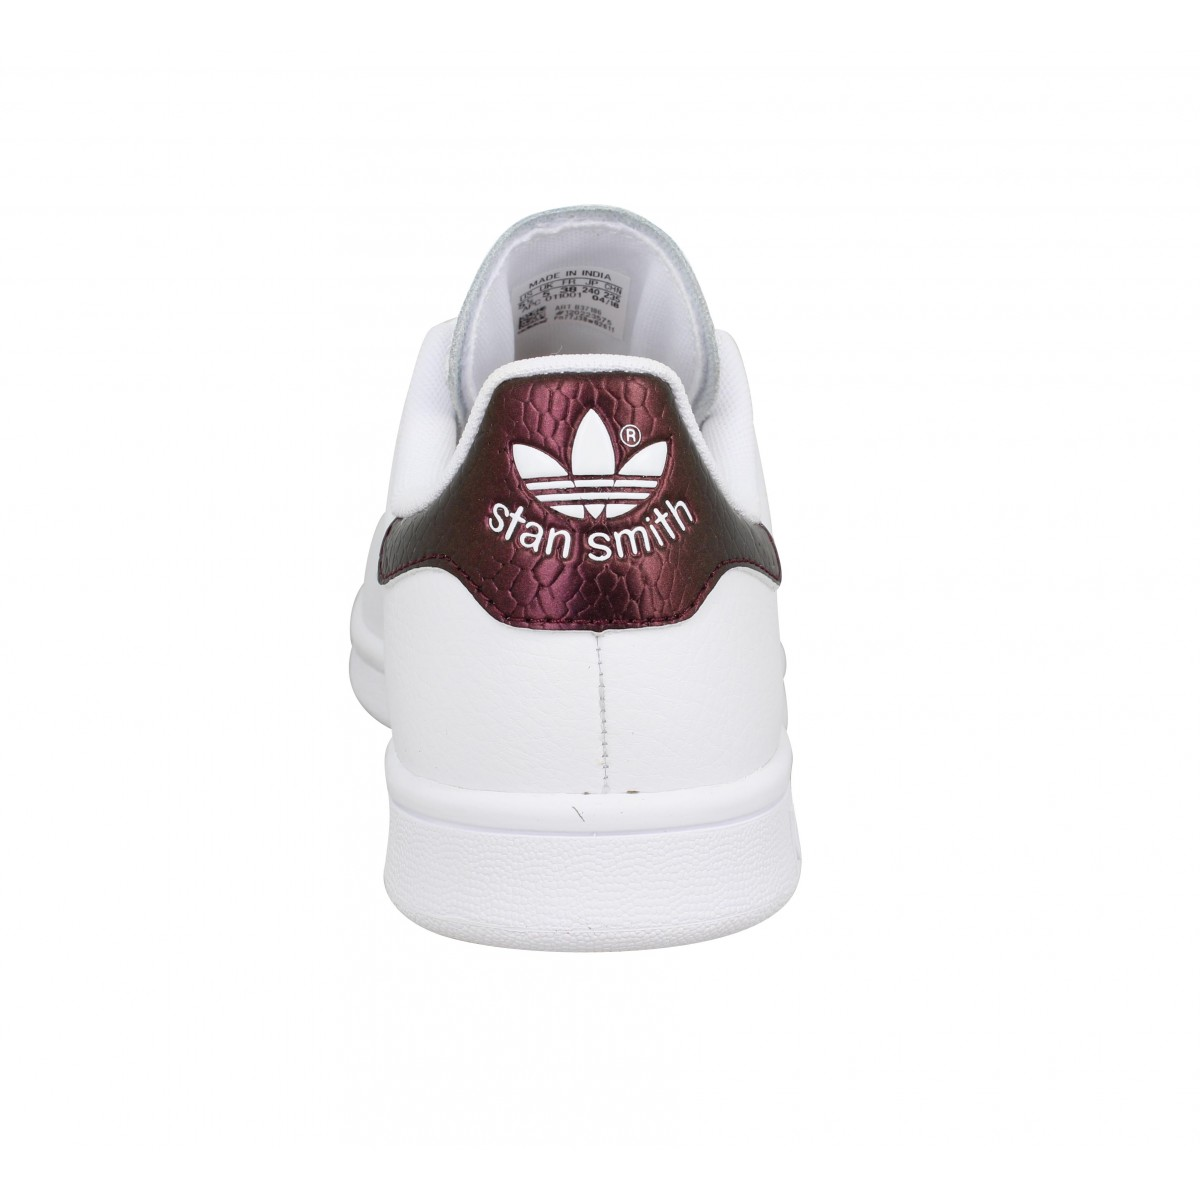 ADIDAS Stan Smith cuir Femme Blanc Bordeaux